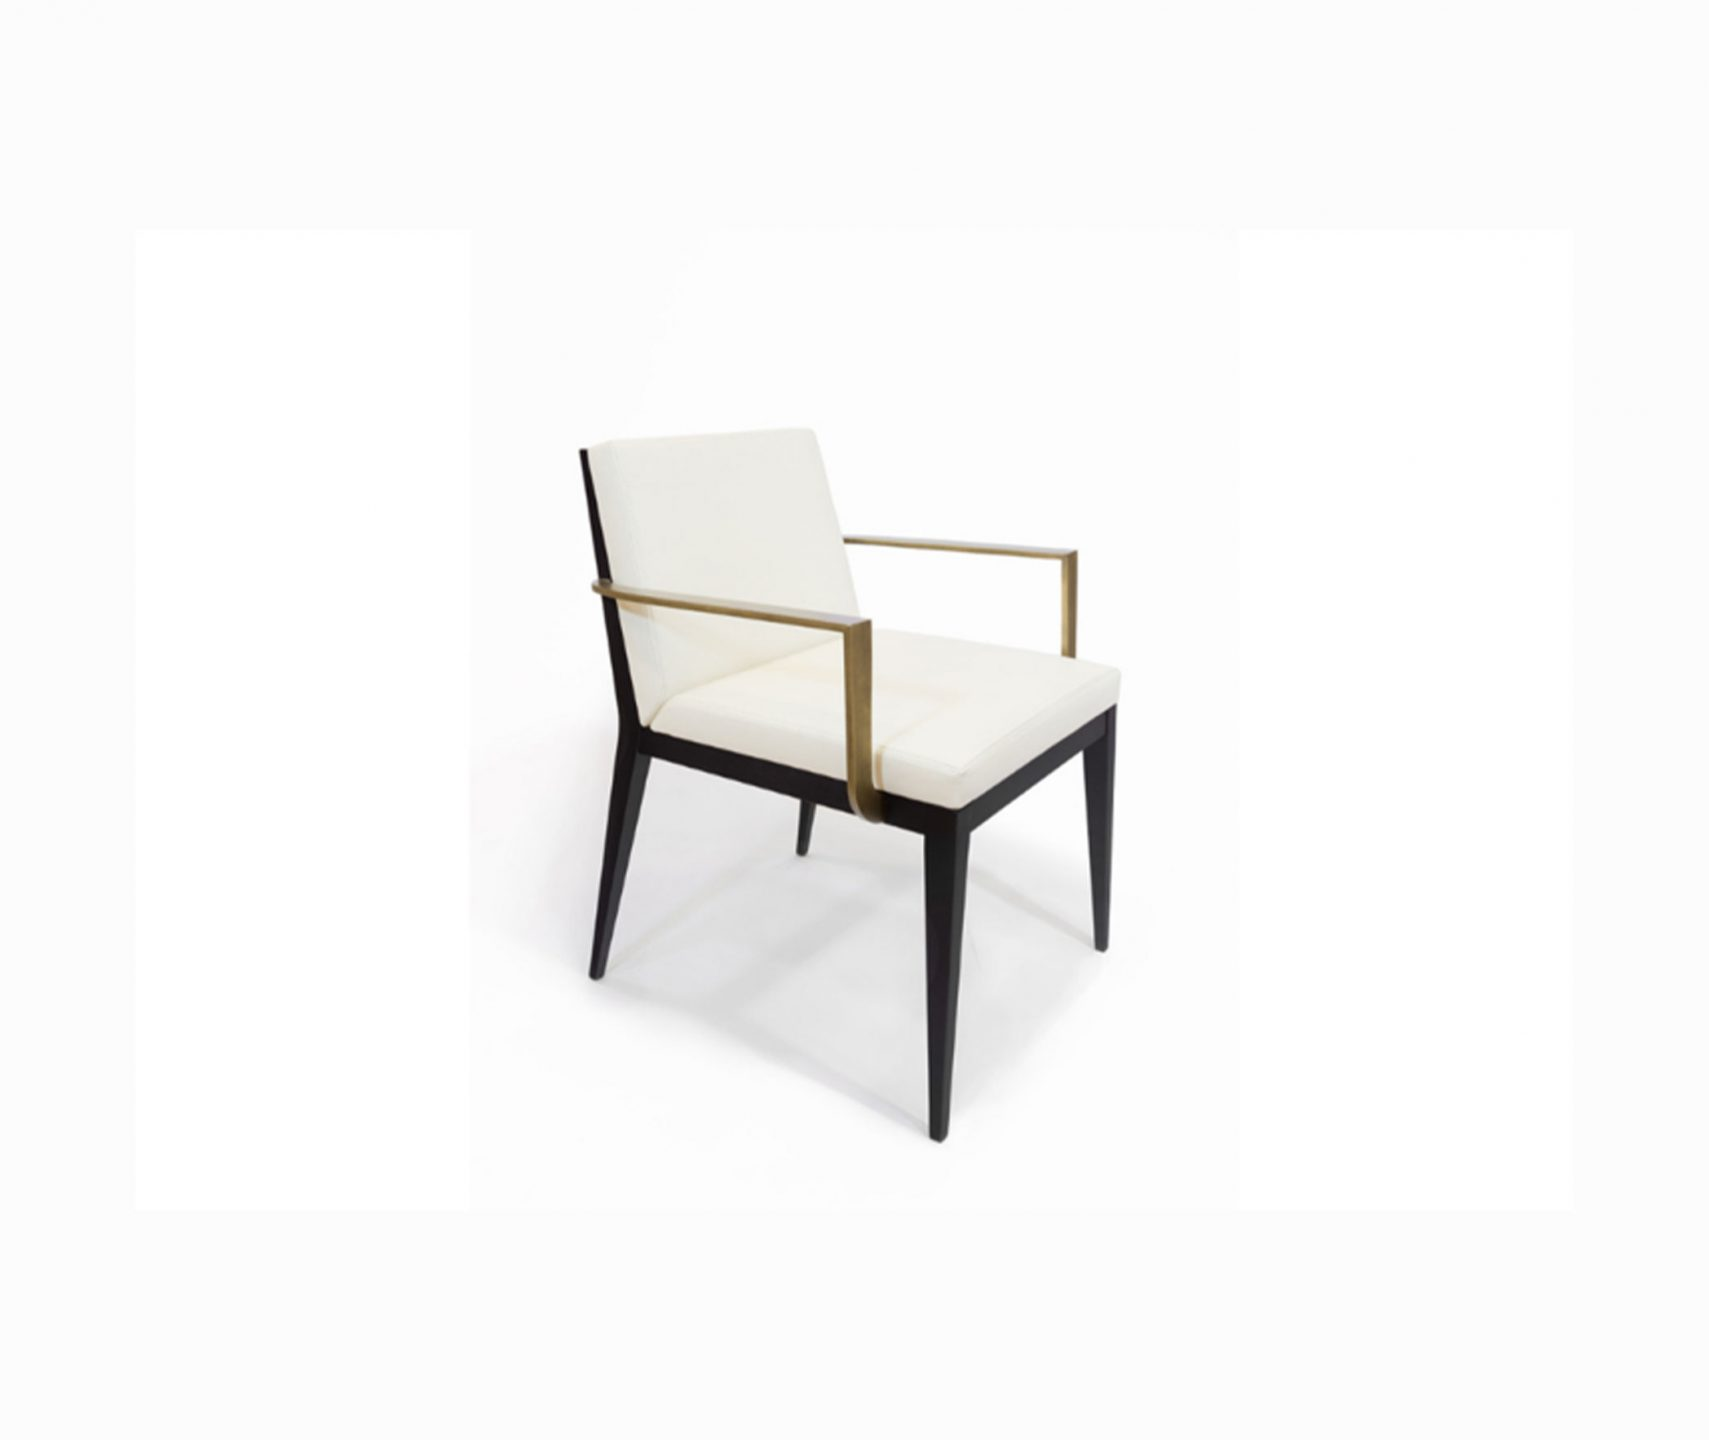 Profiles_Amelie-Dining-Chair-1_int_products